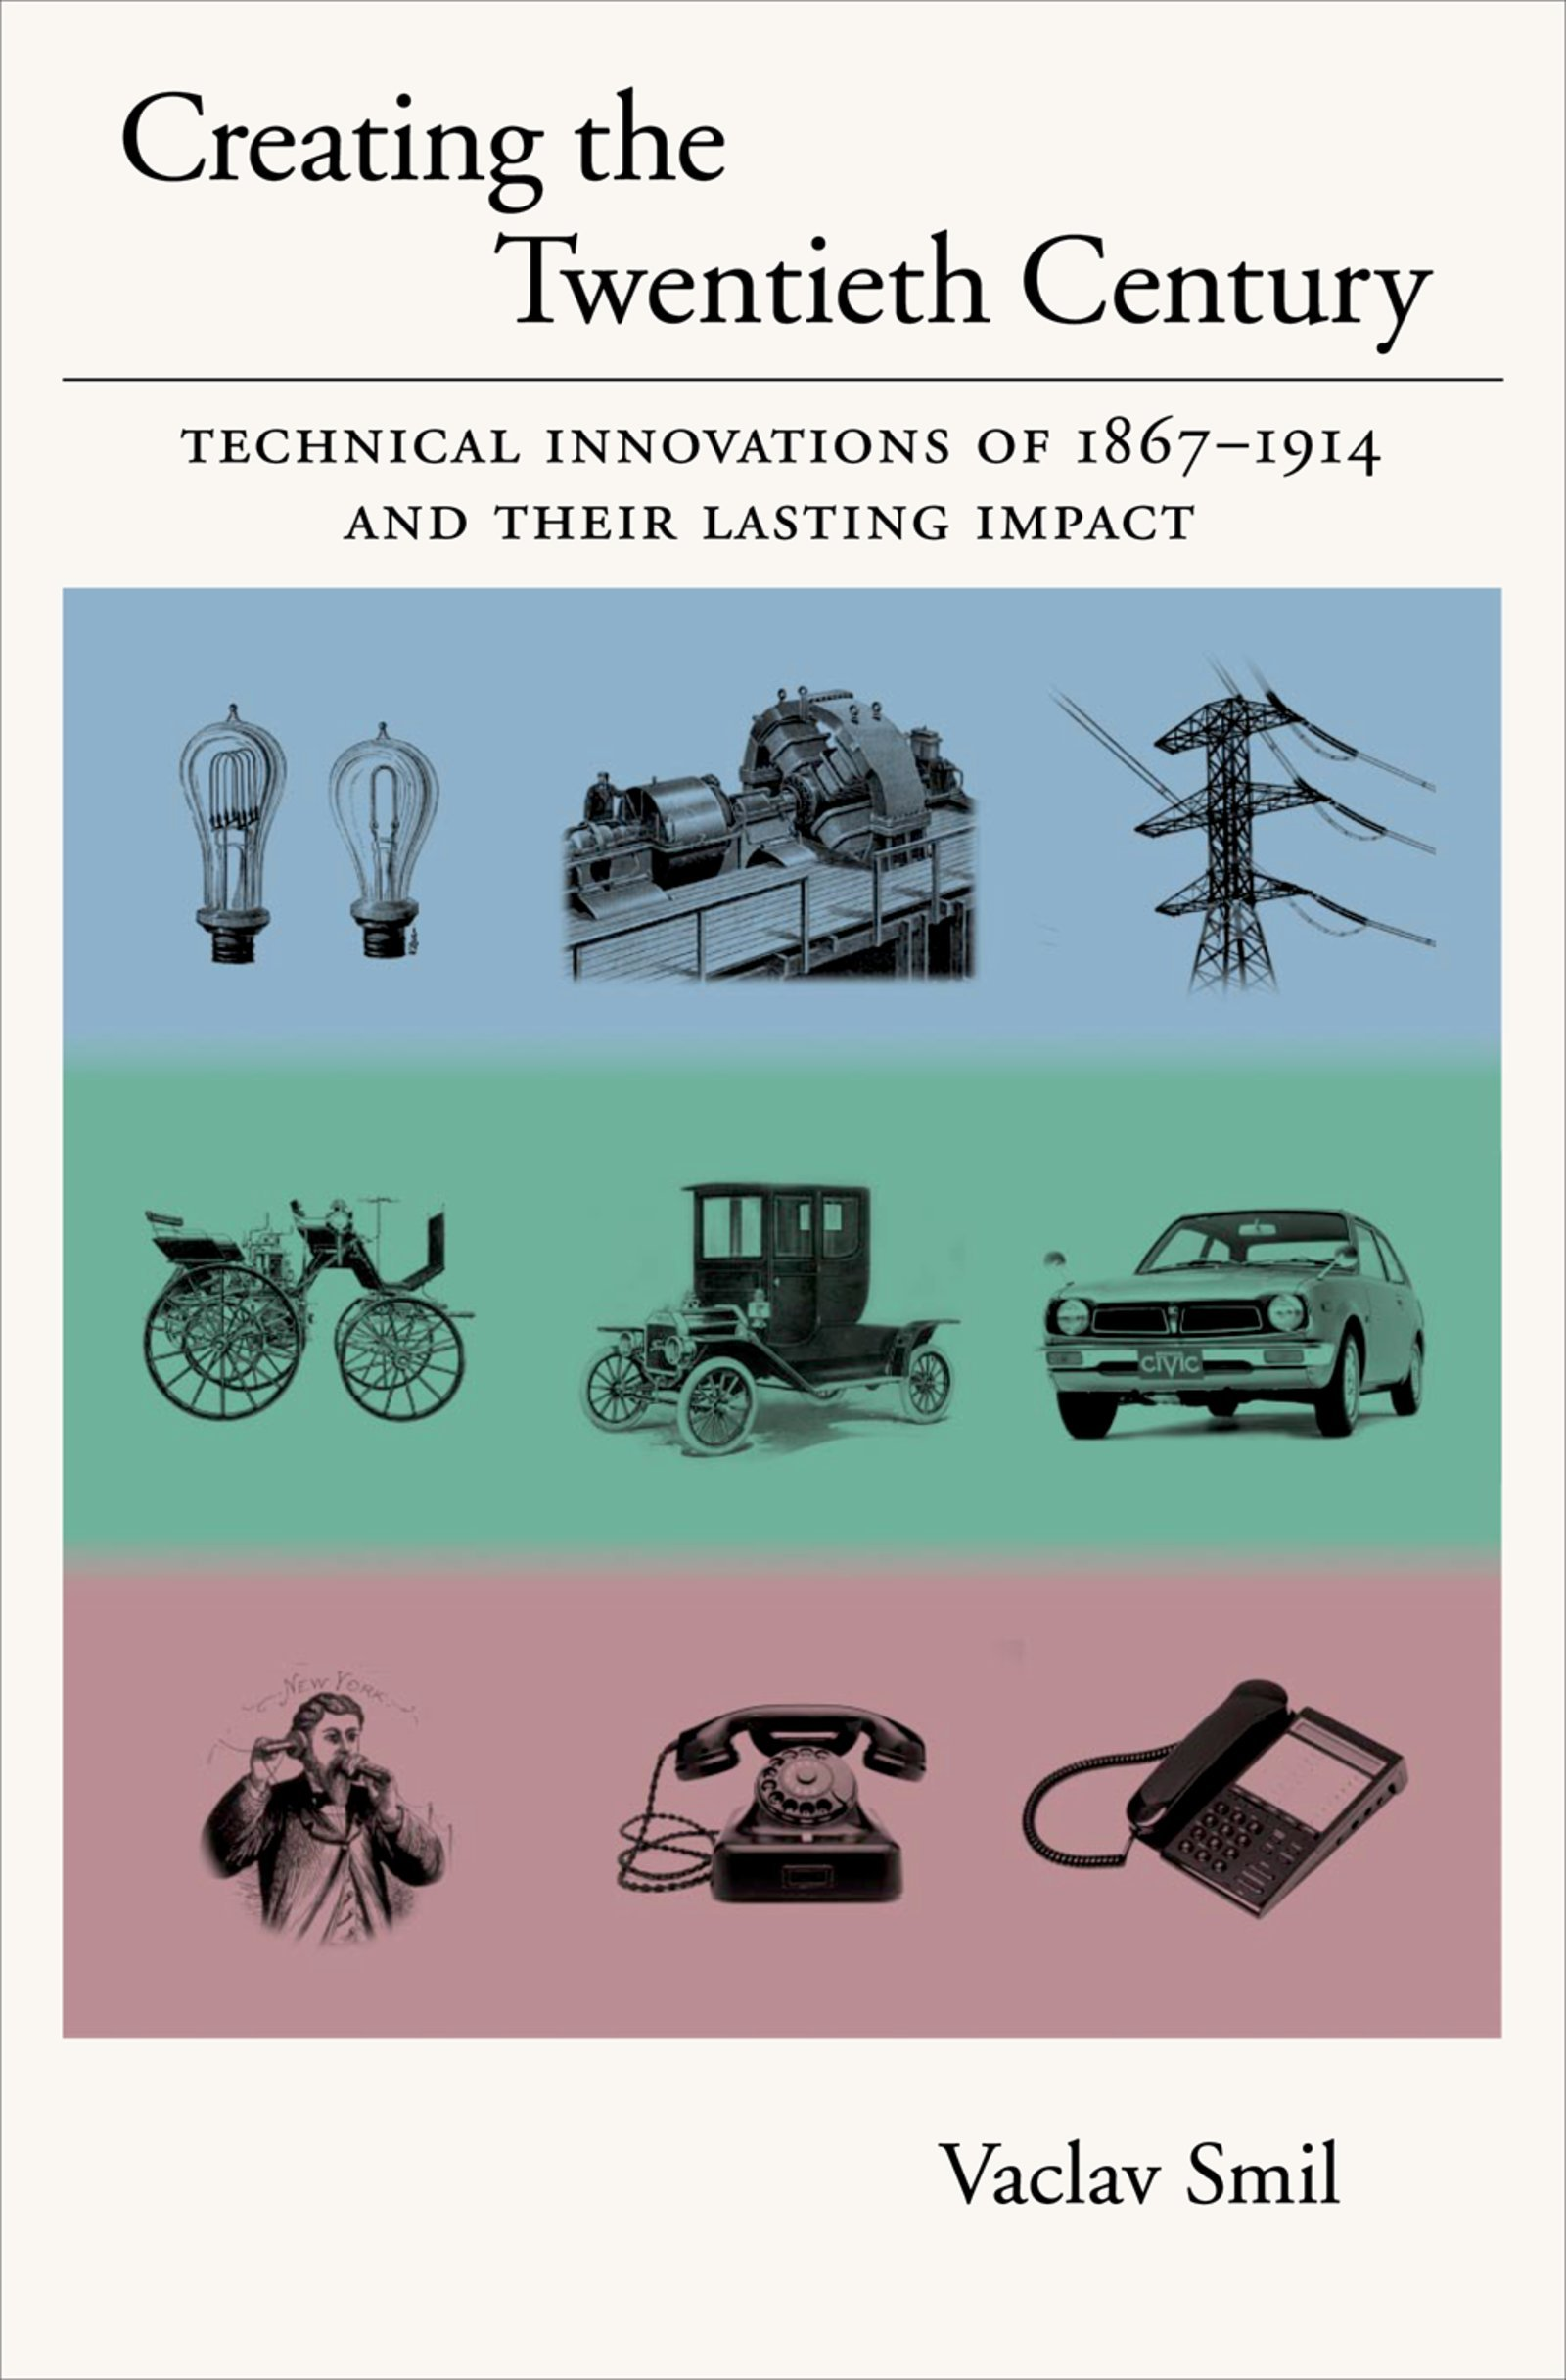 Creating the Twentieth Century: Technical Innovations of 1867-1914 and Their Lasting Impact (Technical Revolutions and Their Lasting Impact Book 1)